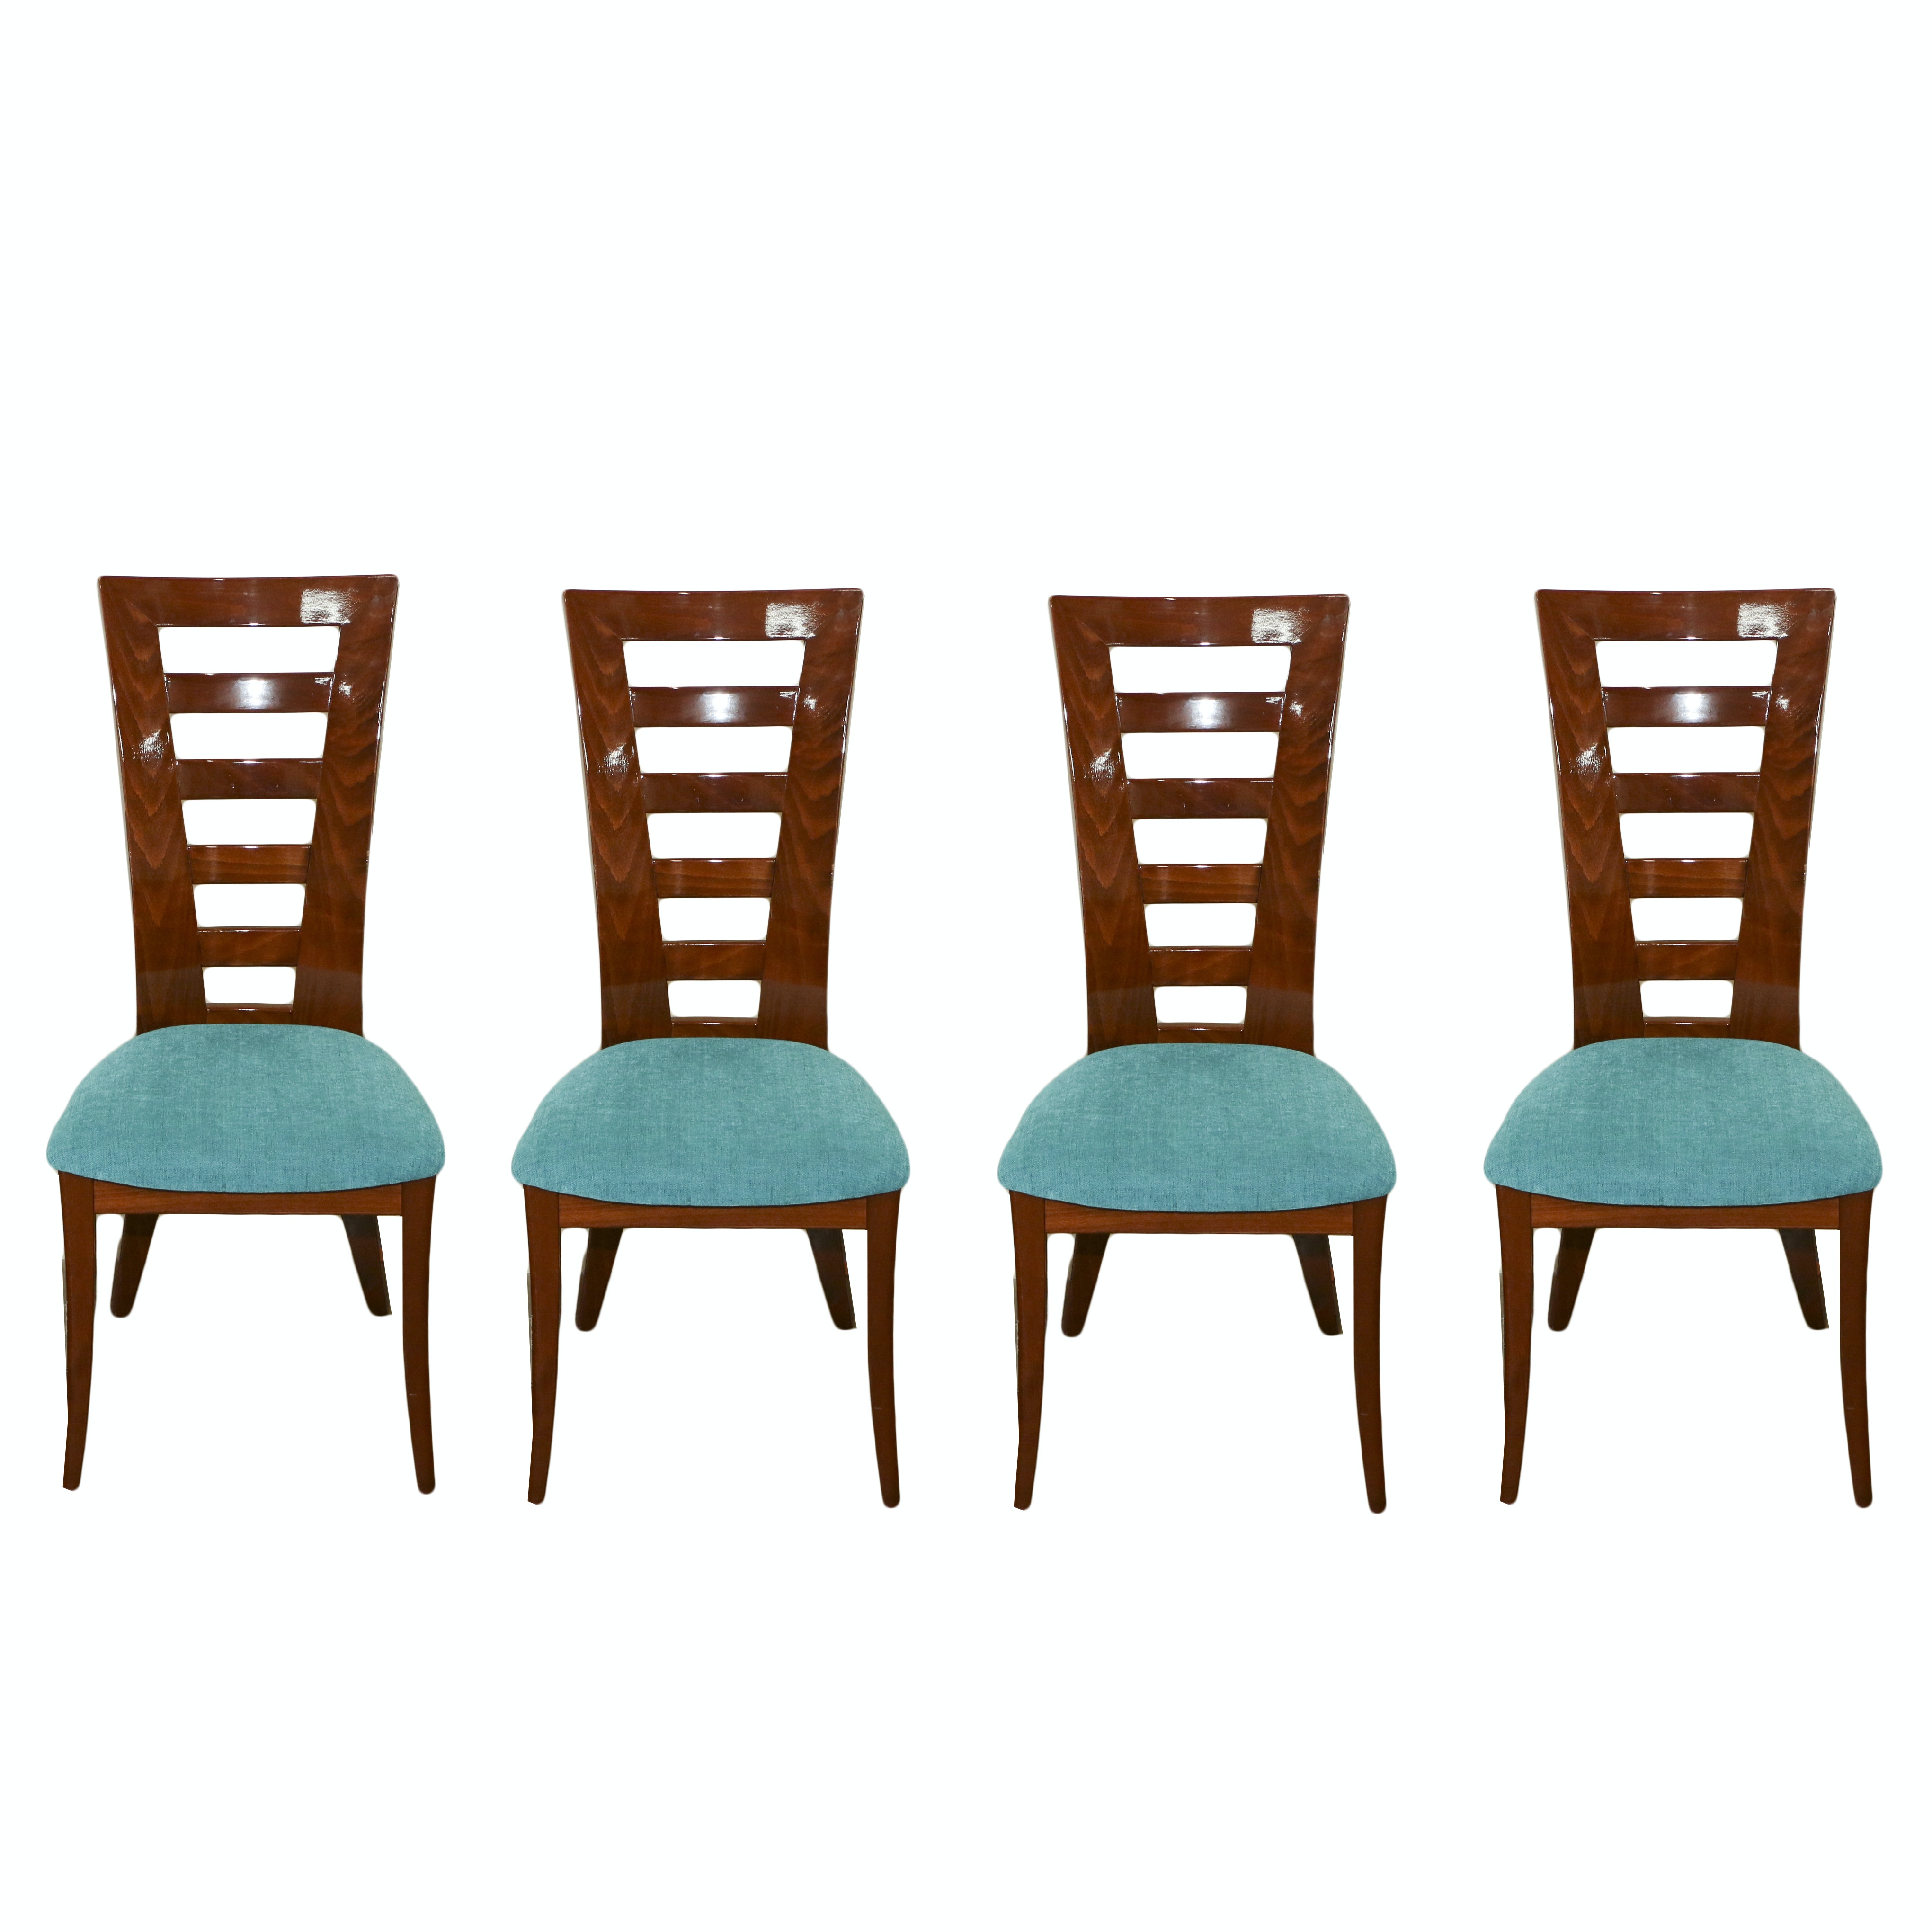 Four Italian Modernist Dining Chairs with Rosewood Inlay